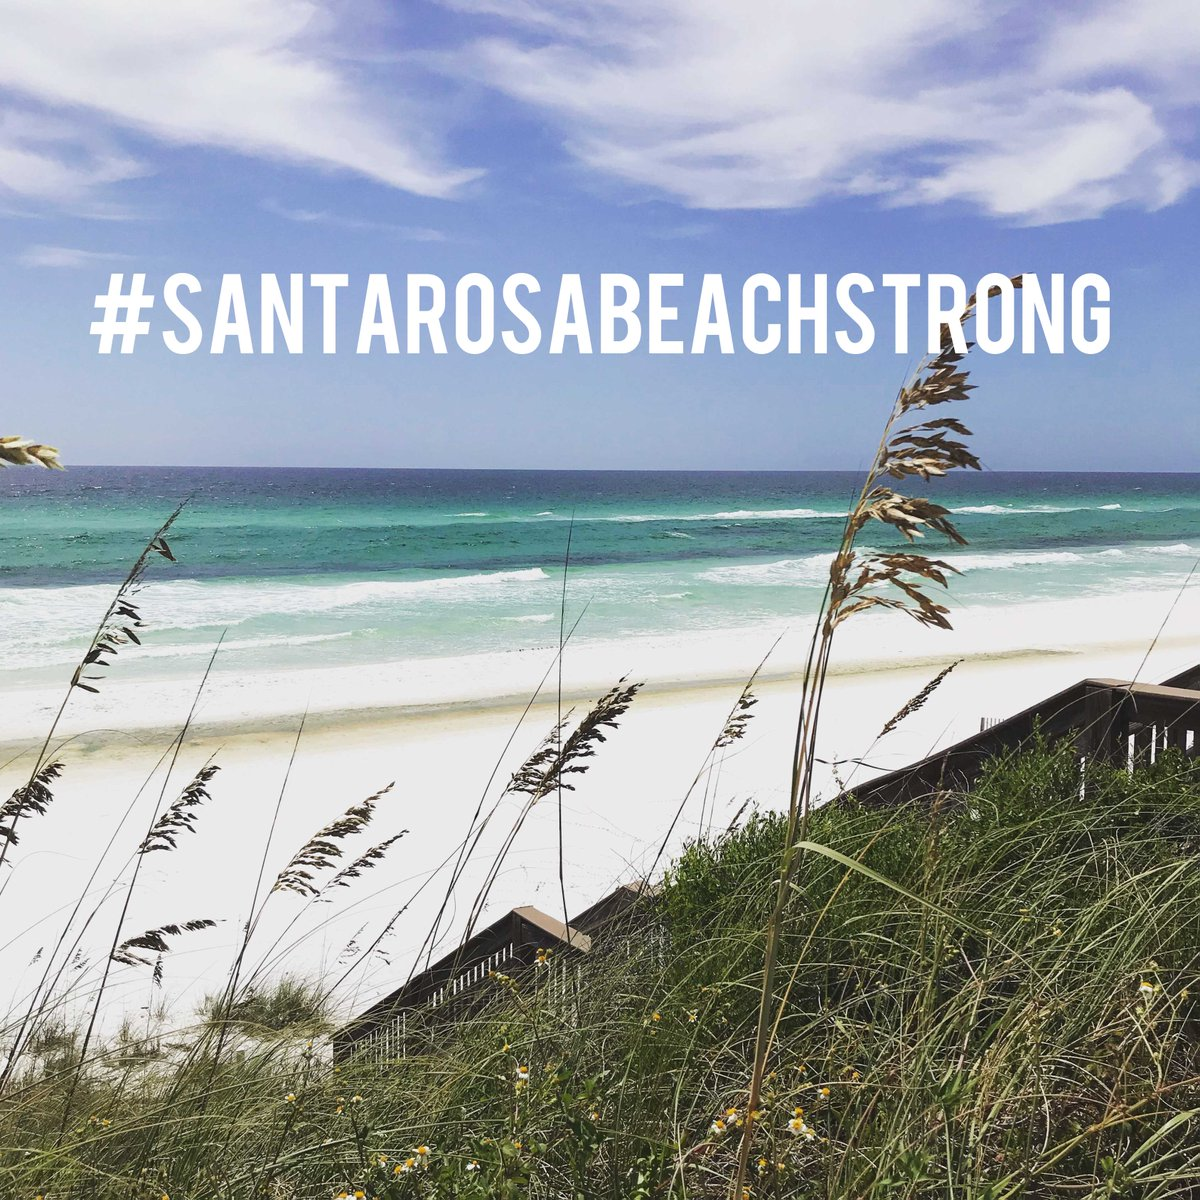 Thank you to our incredible members for raising over $21,000 to directly support the members and staff who lost their homes in the recent fire  . . . . #santarosabeachstrong #clublife #santarosaclubpic.twitter.com/uomf3qnAHP